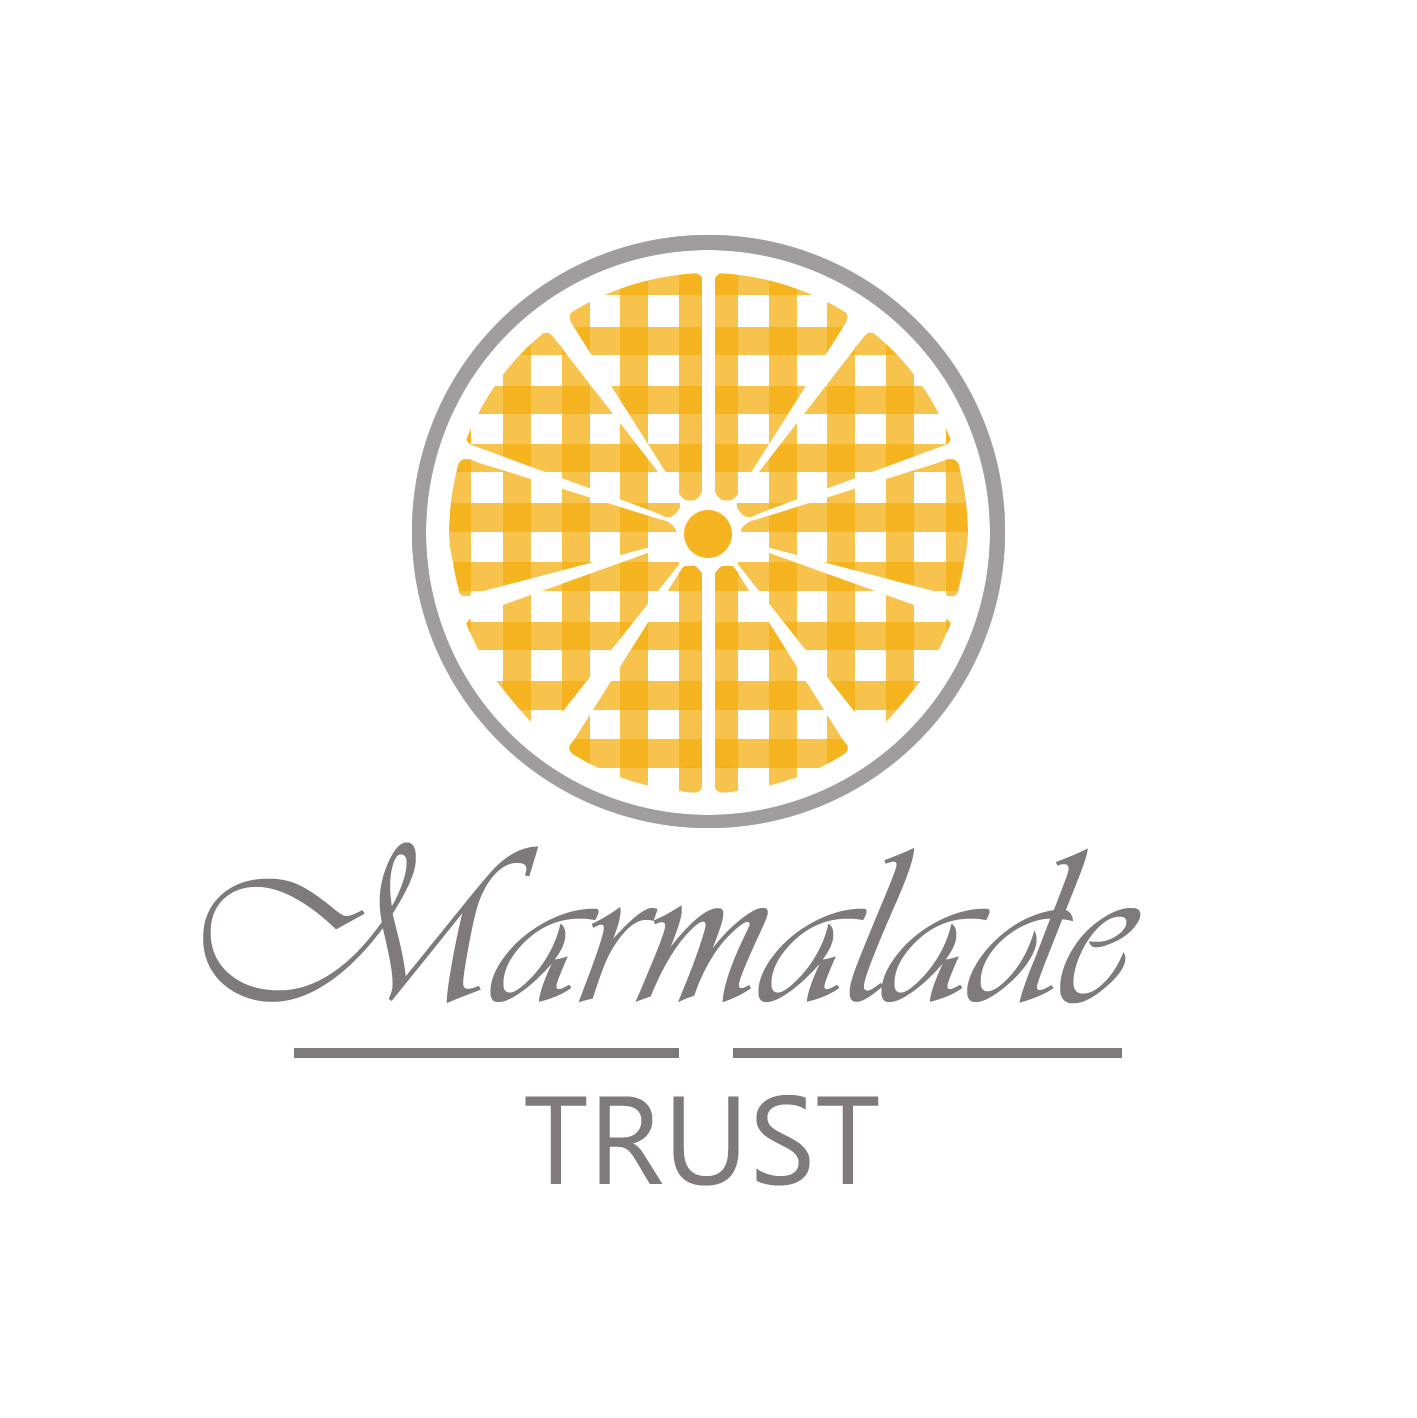 Marmalade Trust - Dedicated to recognising loneliness across society and helping people to make new friendships.